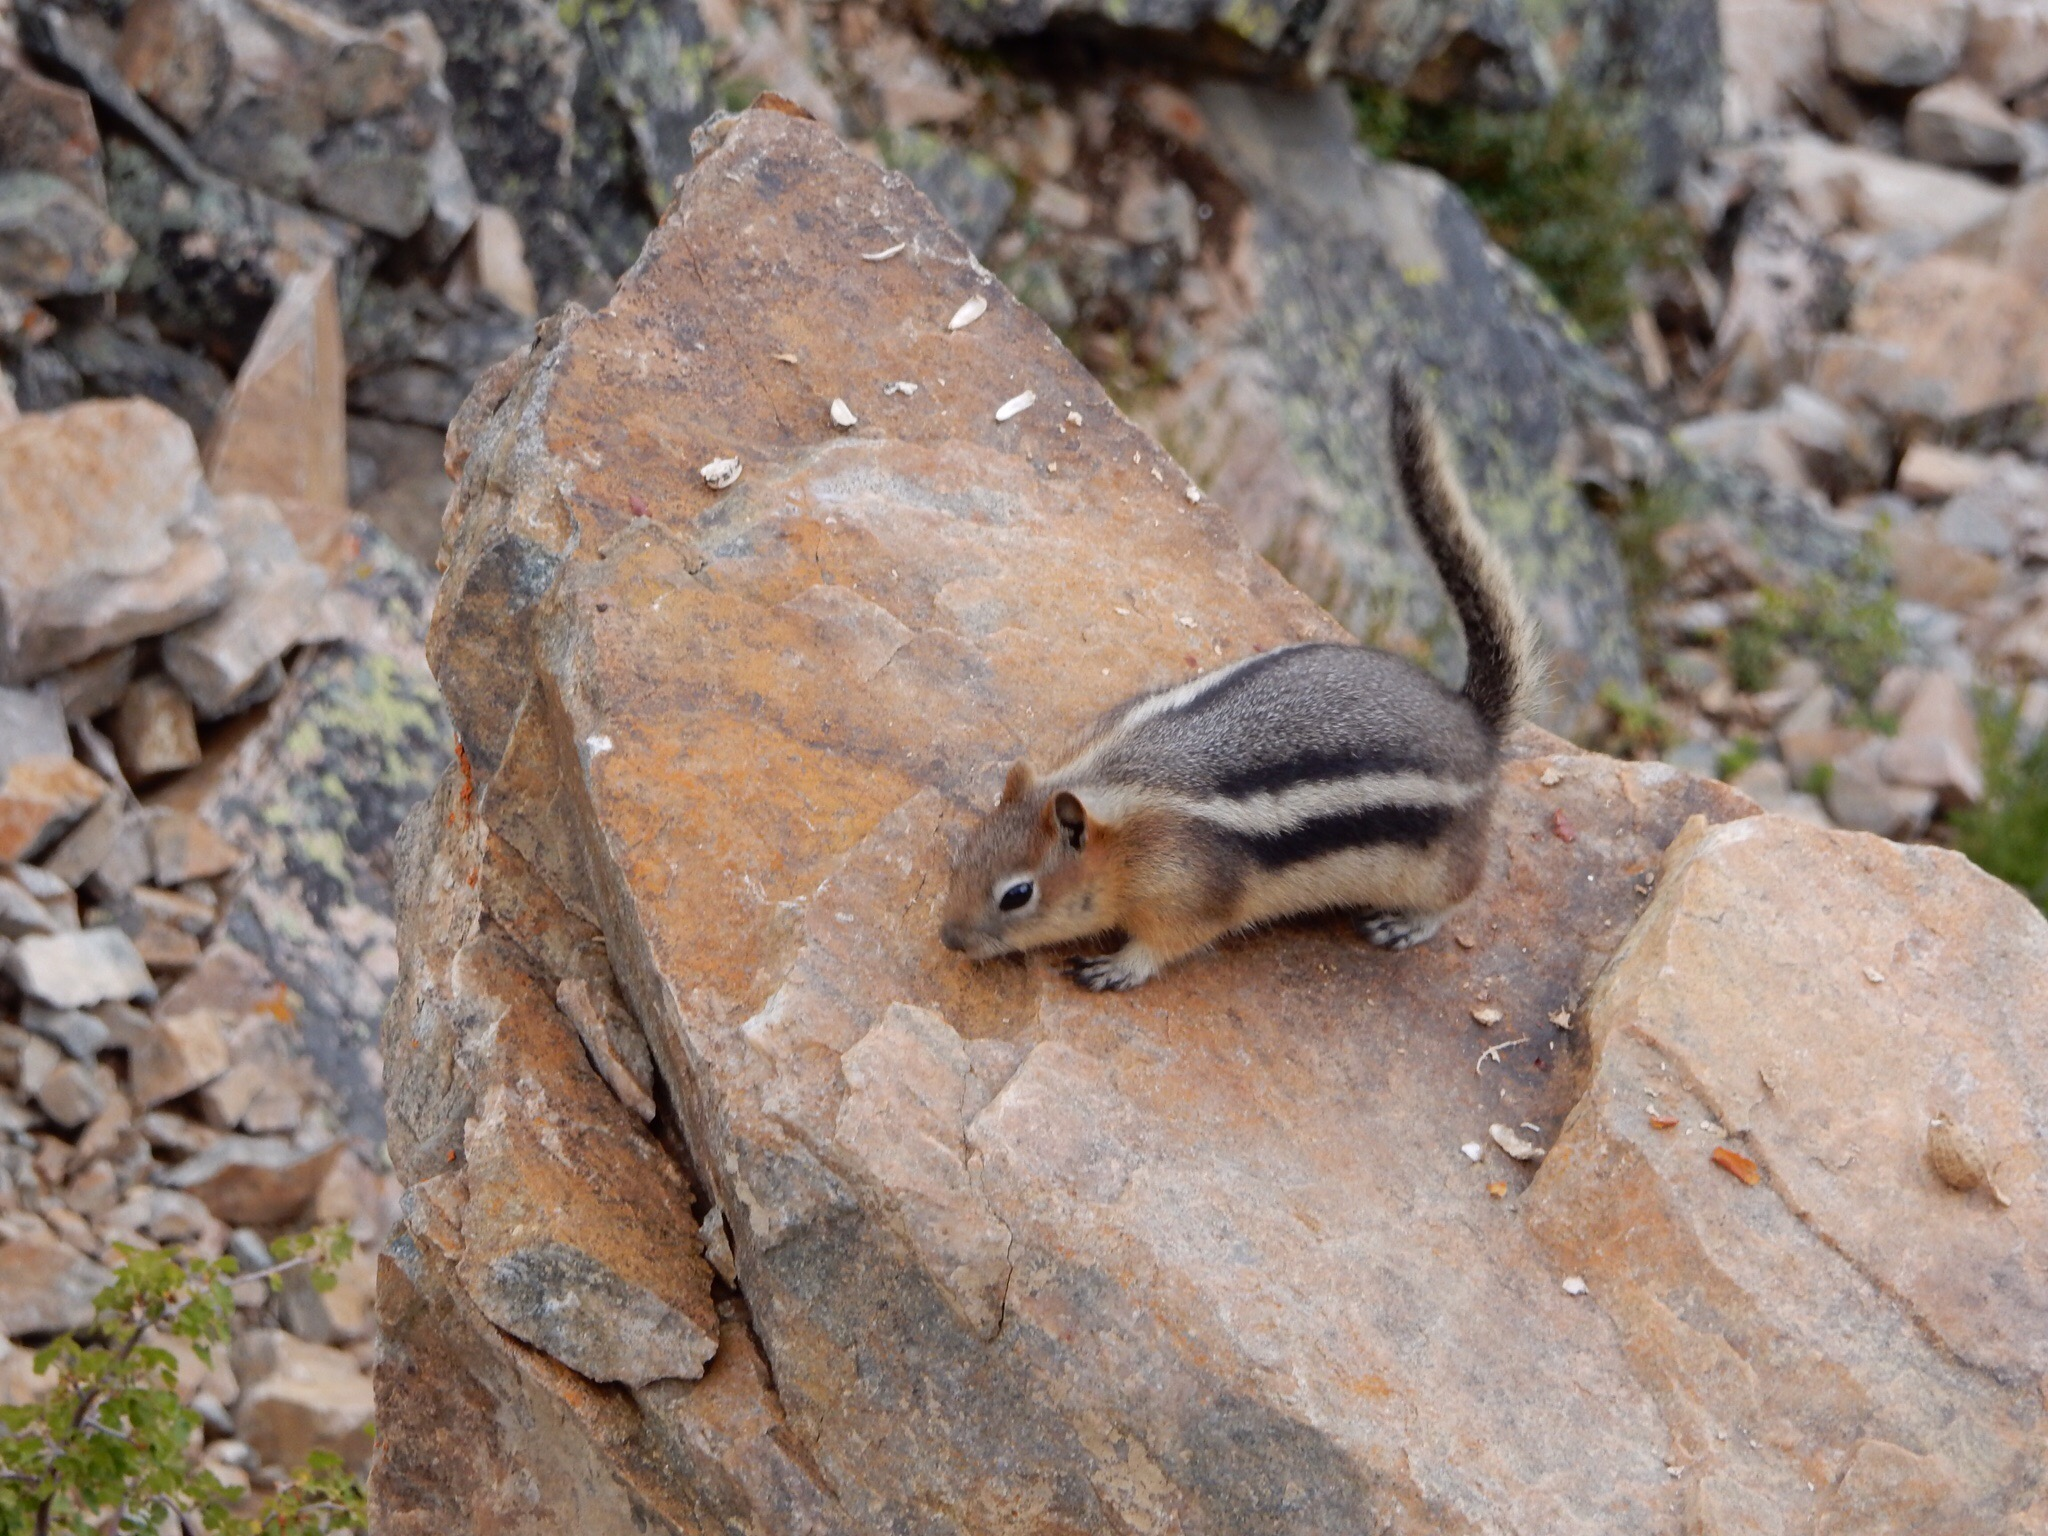 One of several fat chipmunks at the Beartooth Pass overlook.One of several fat chipmunks at the Beartooth Pass overlook.